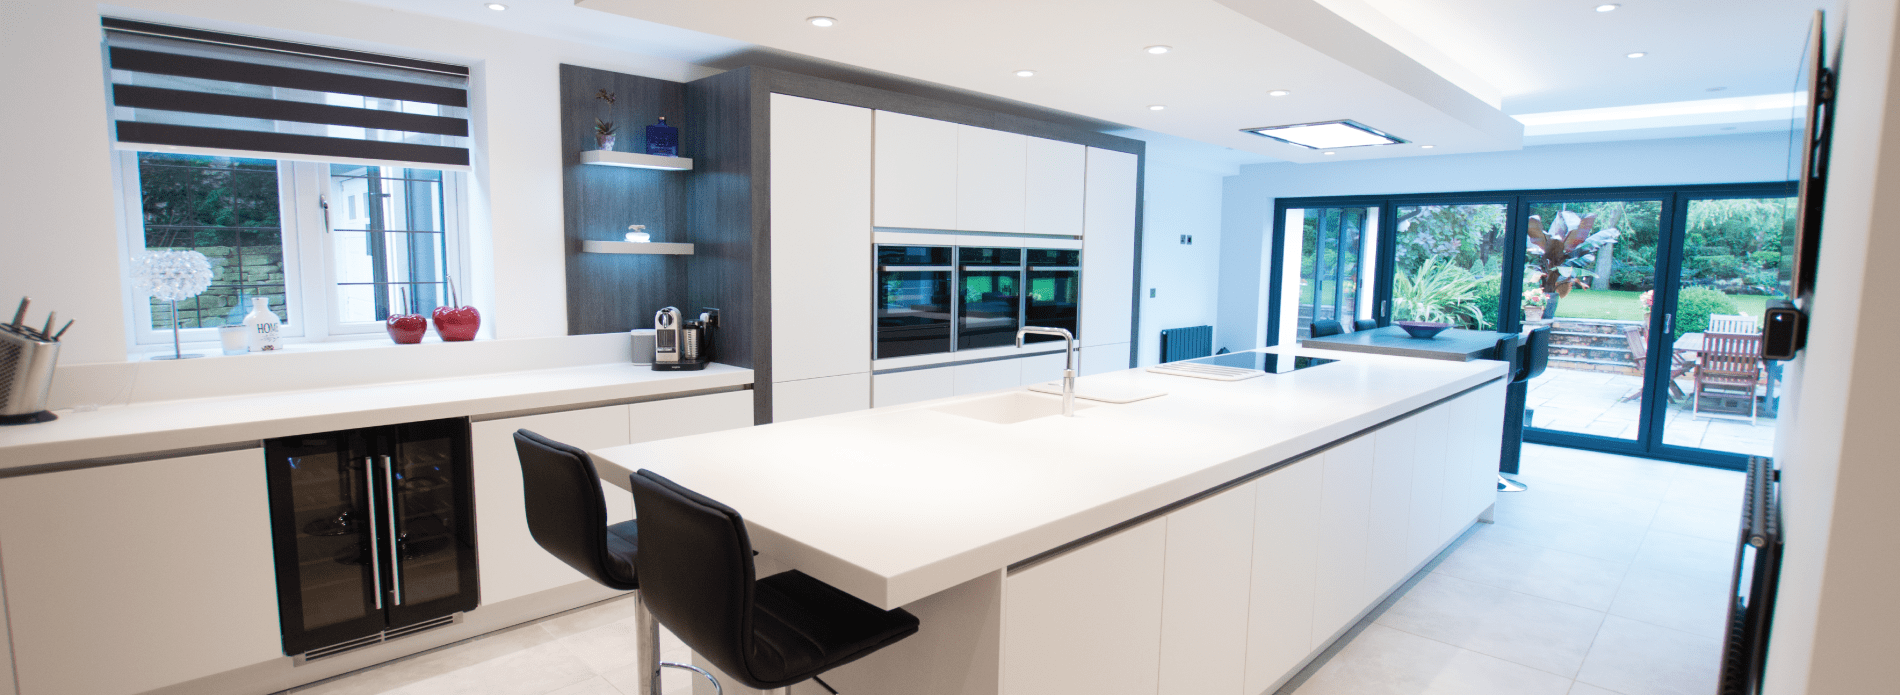 Designer Kitchens Manchester Buslineus Kitchen Designers Norfolk With Designer  Kitchen.